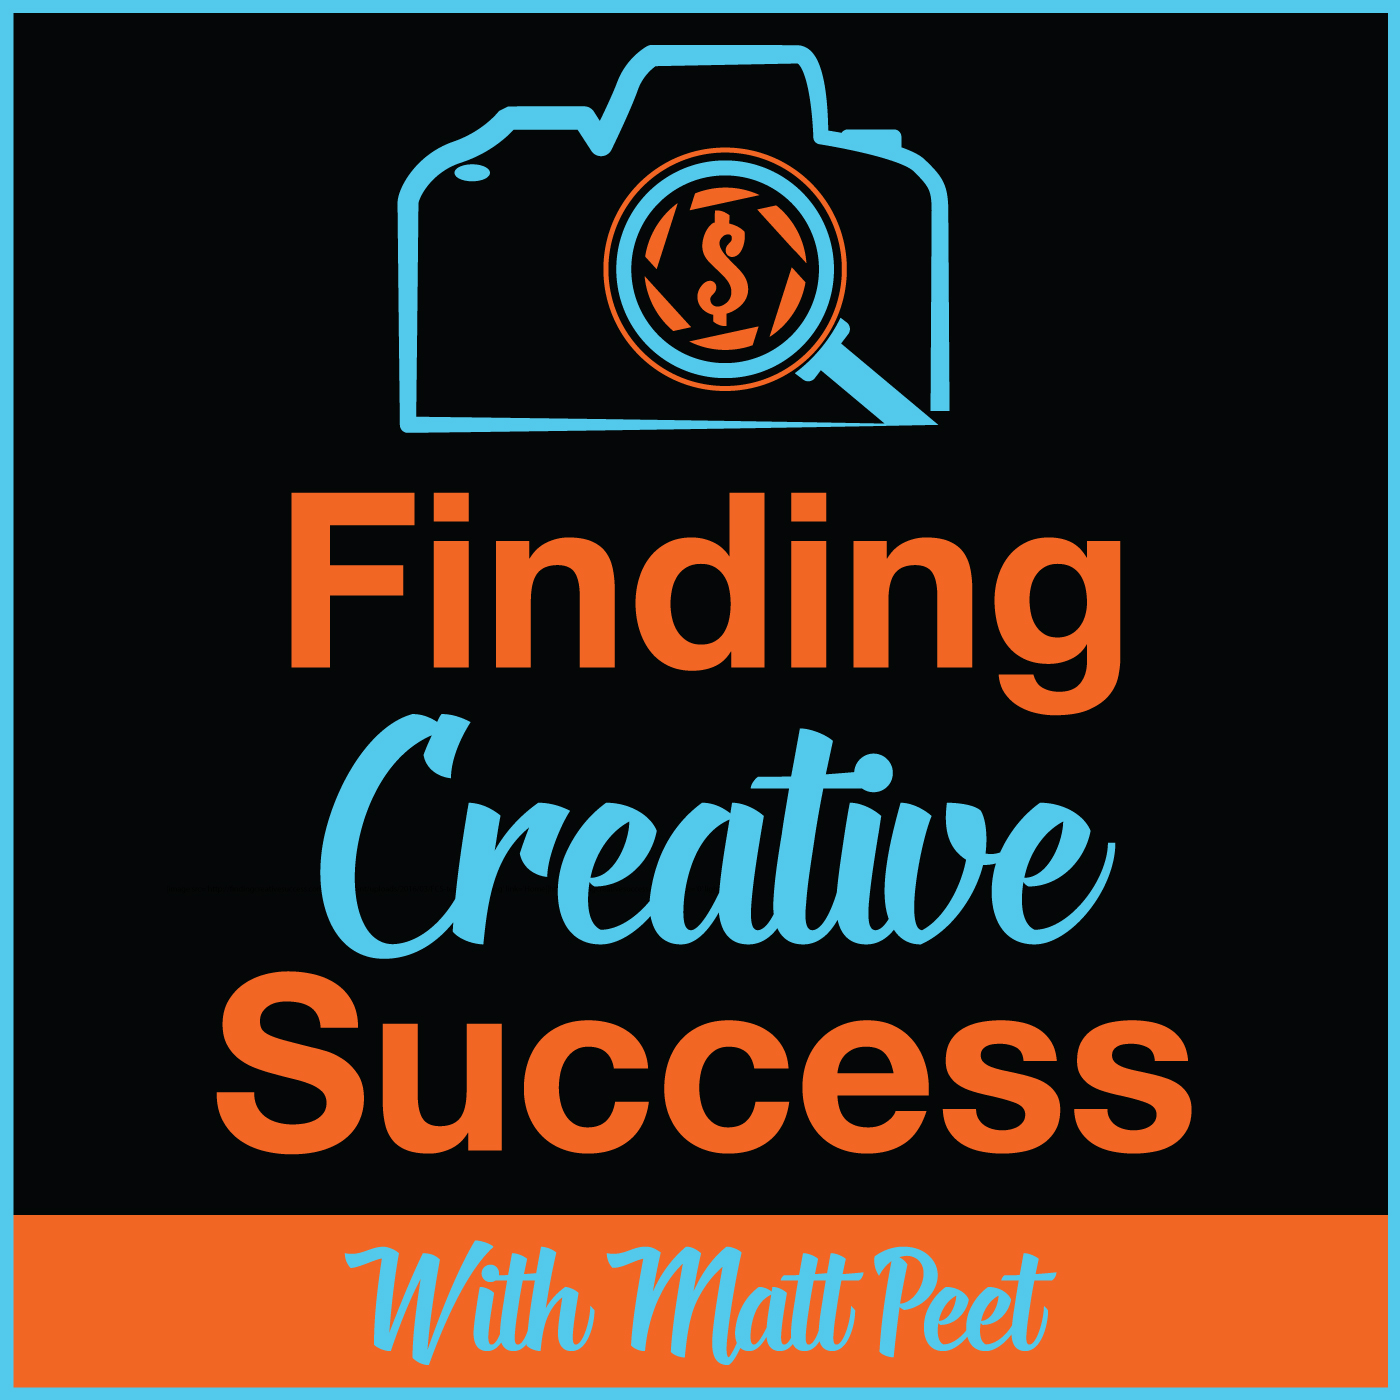 FCS 084: Joel Olivo talks about Starting with the end in mind, social media, and lead generation! show art